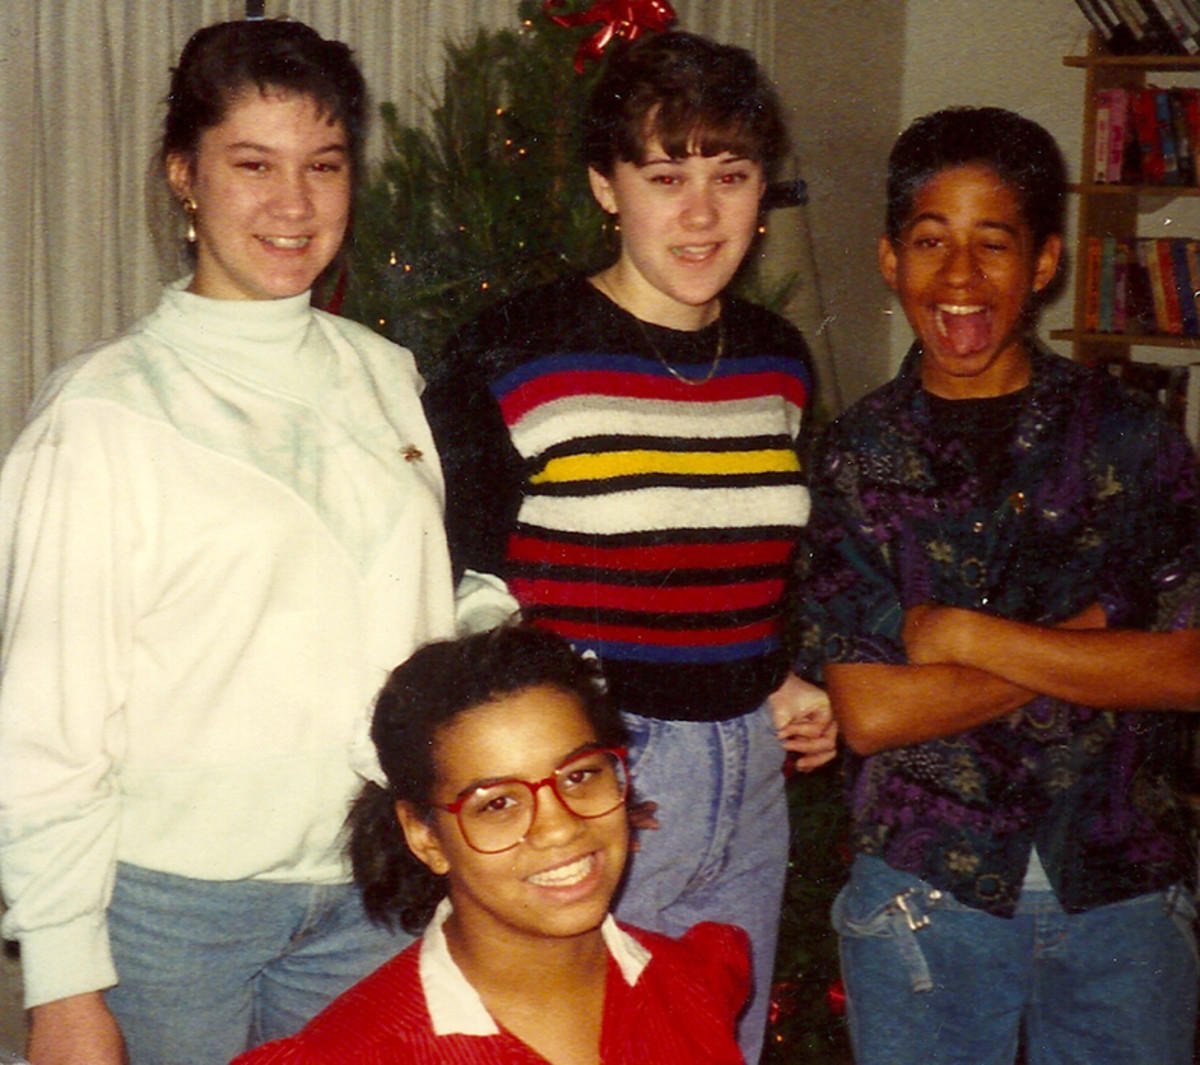 Group picture from 1991.